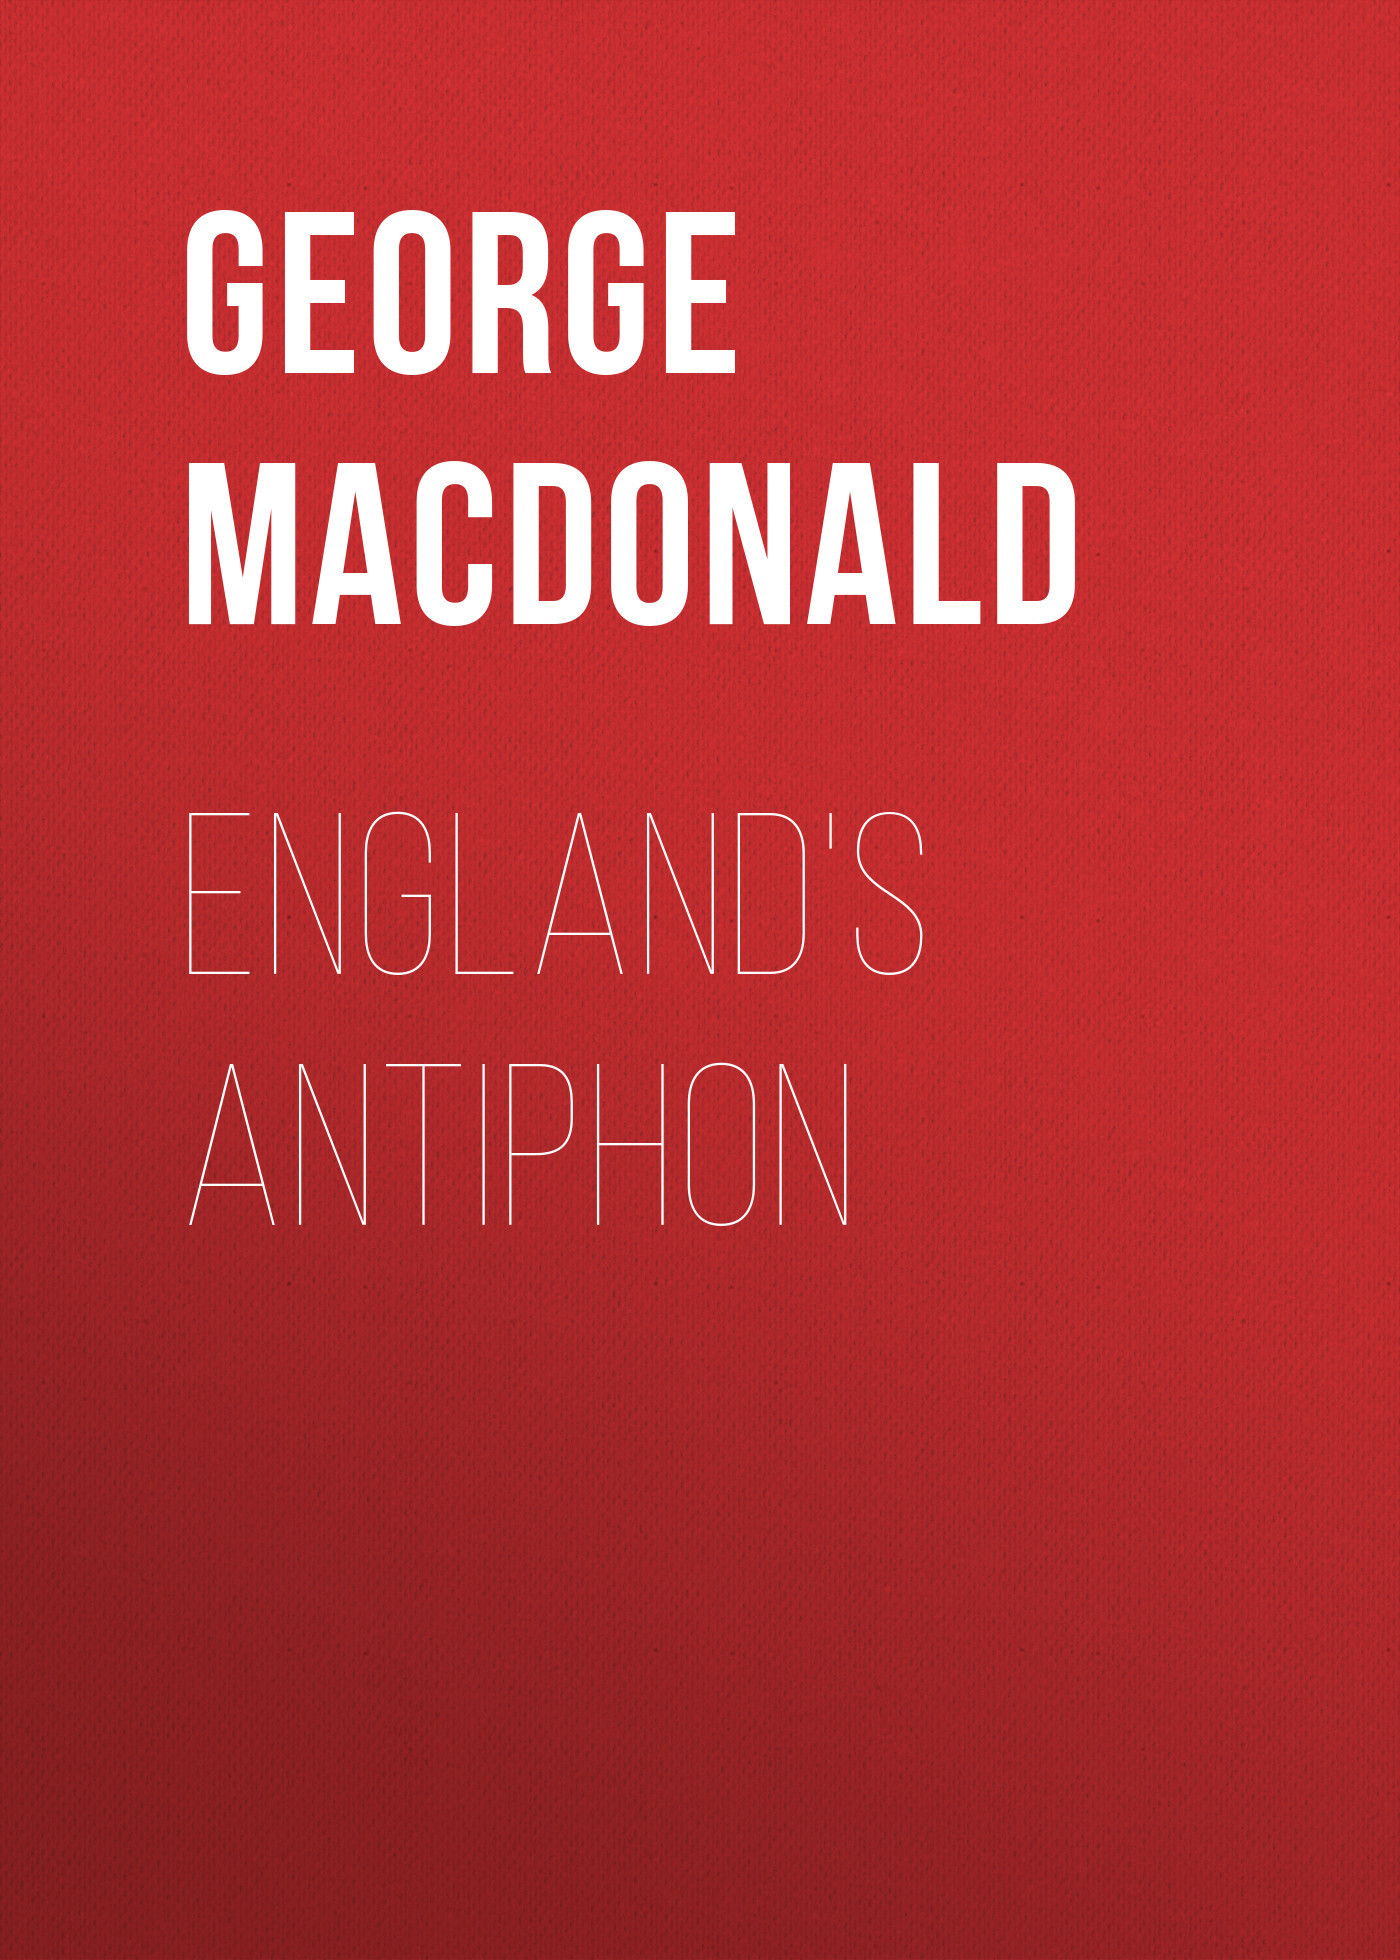 где купить George MacDonald England's Antiphon дешево